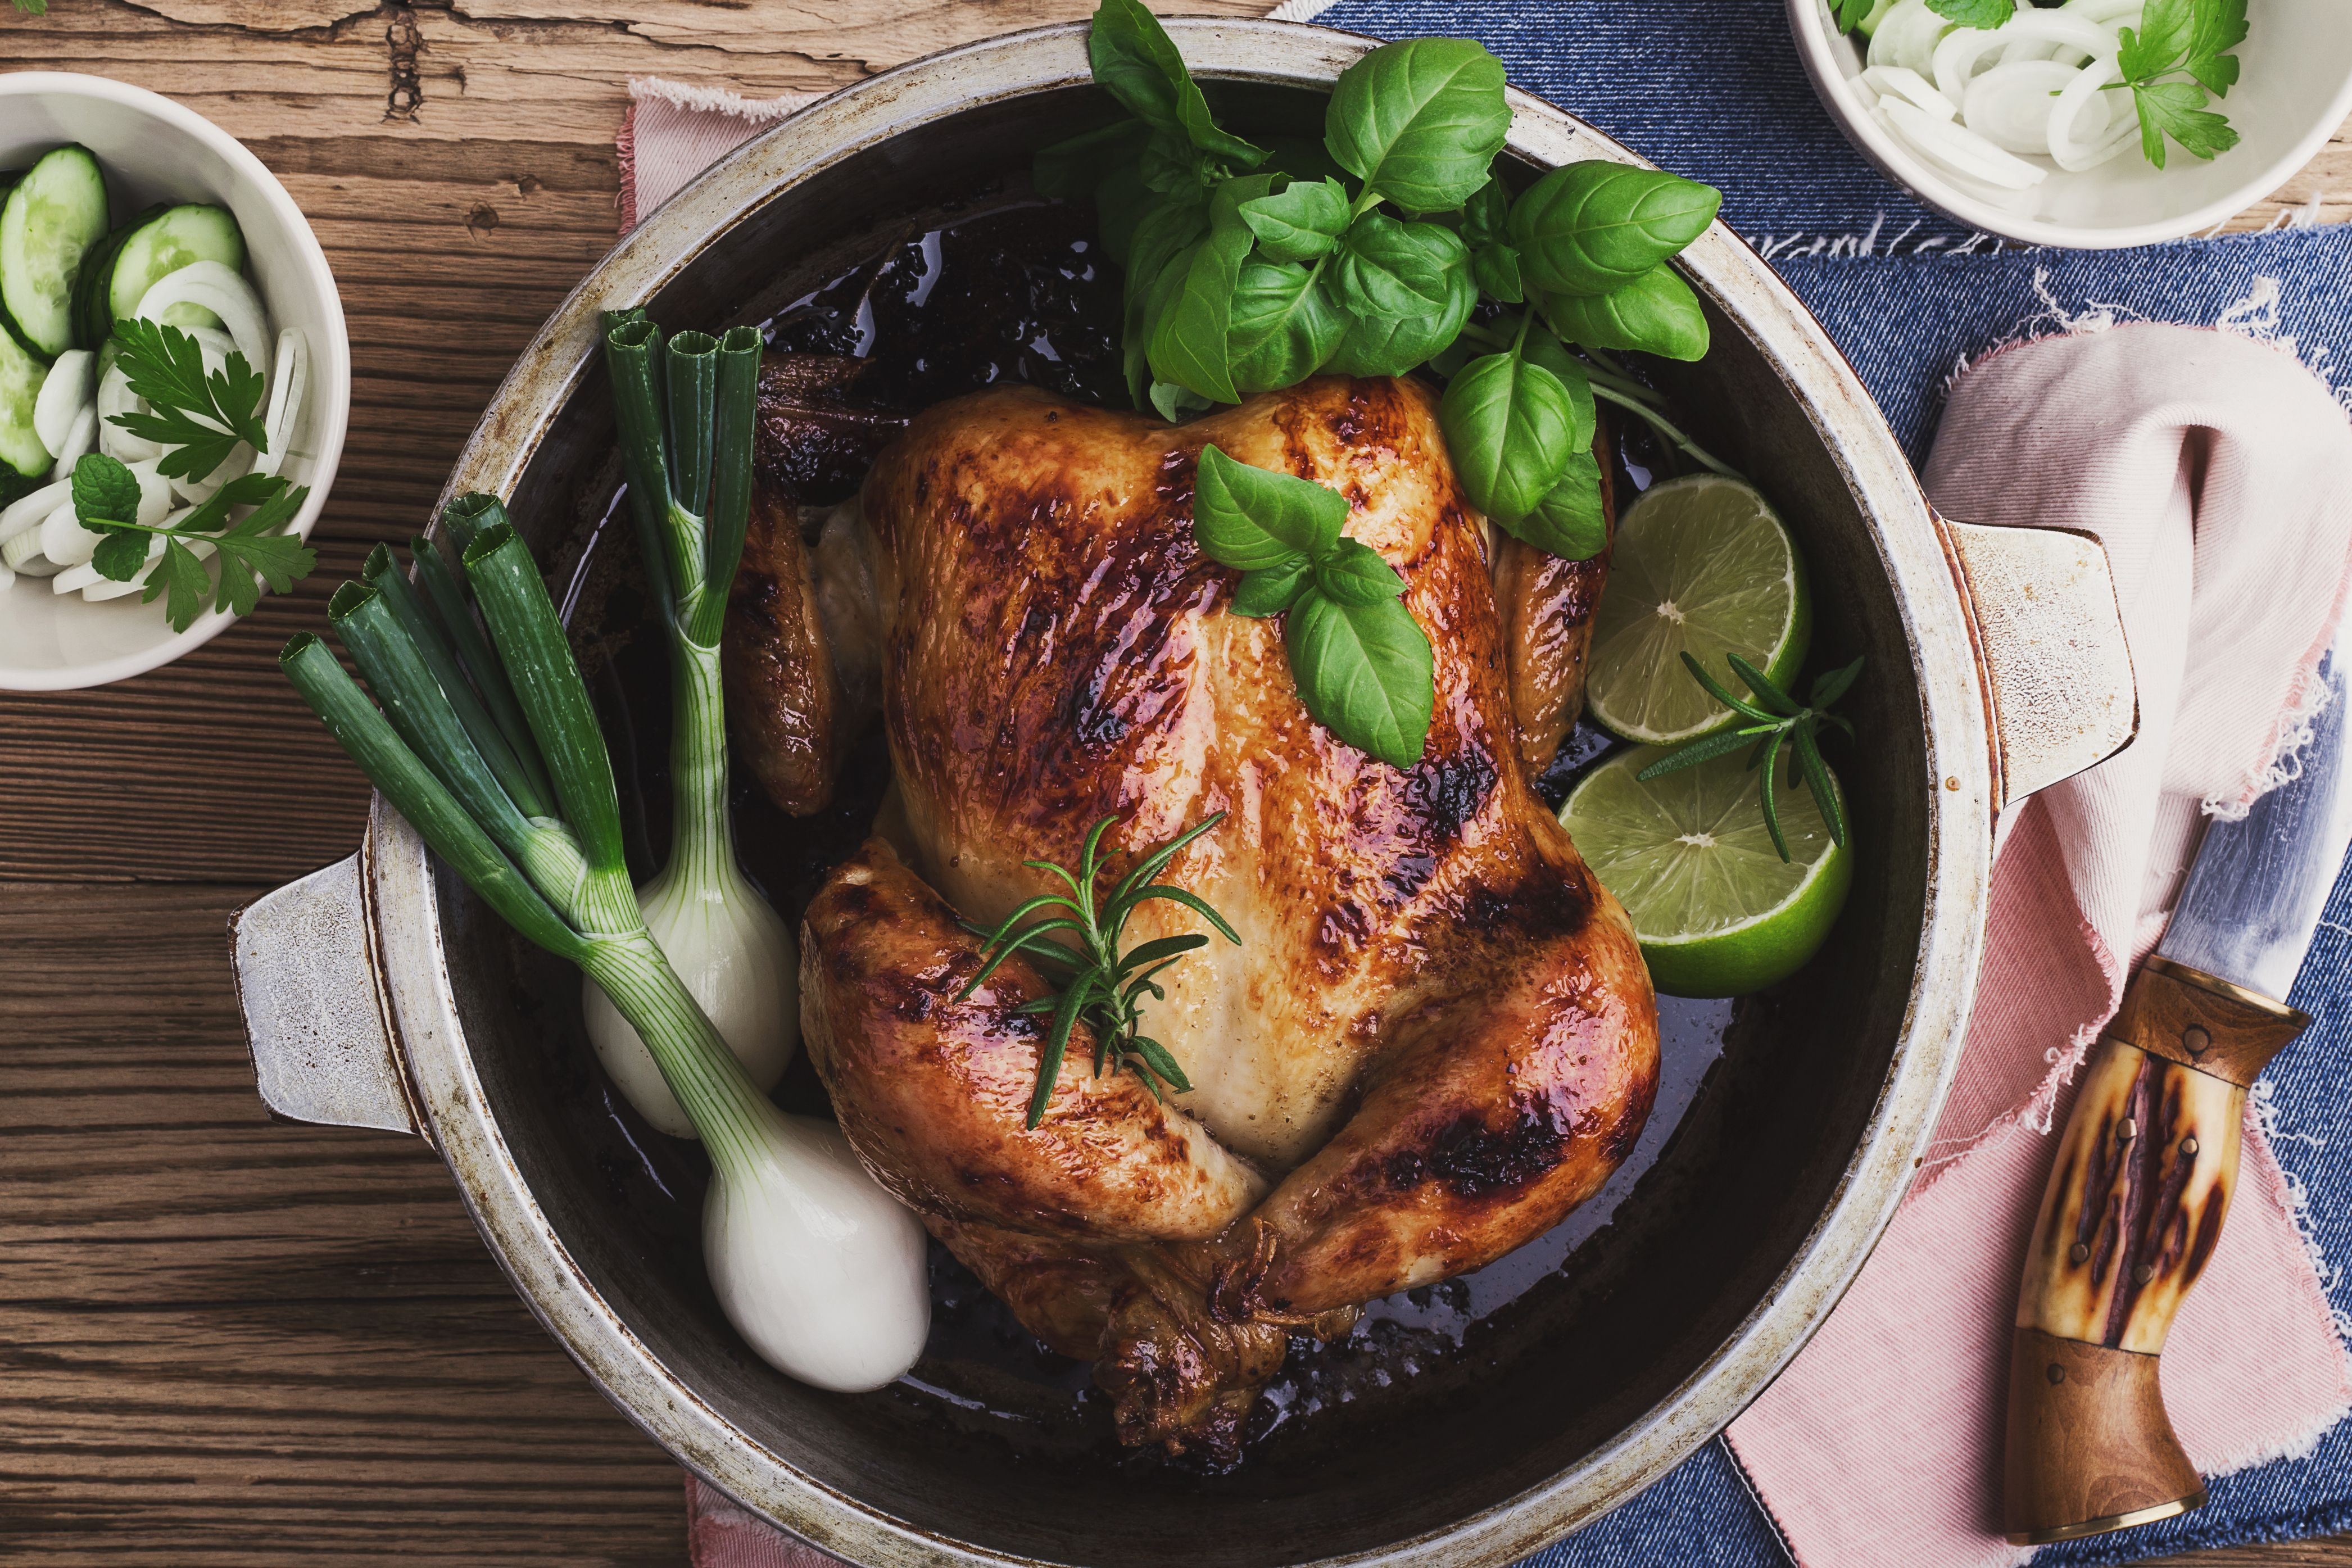 Chicken with limes.